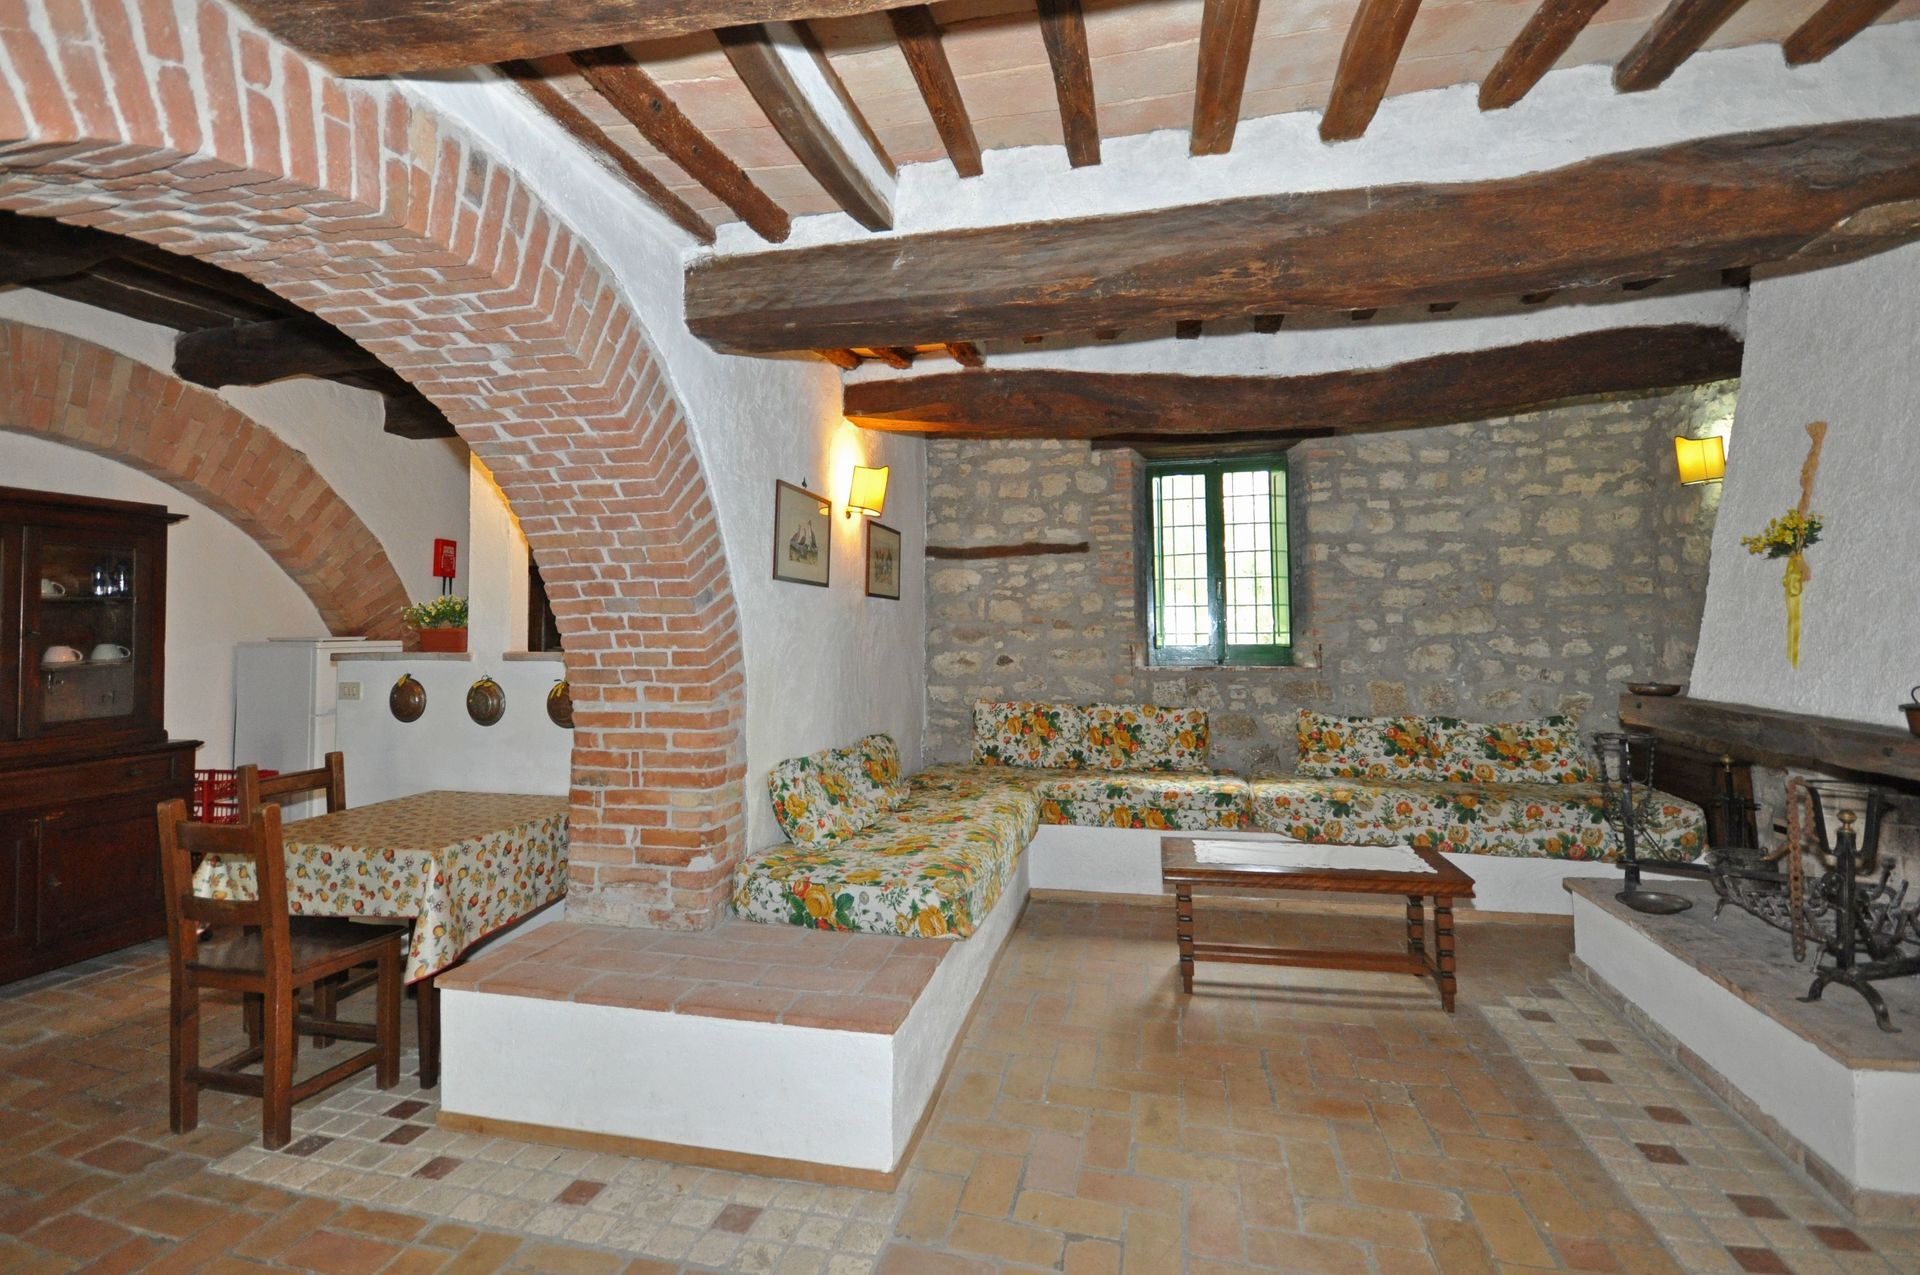 Properties Corciano kind of permit